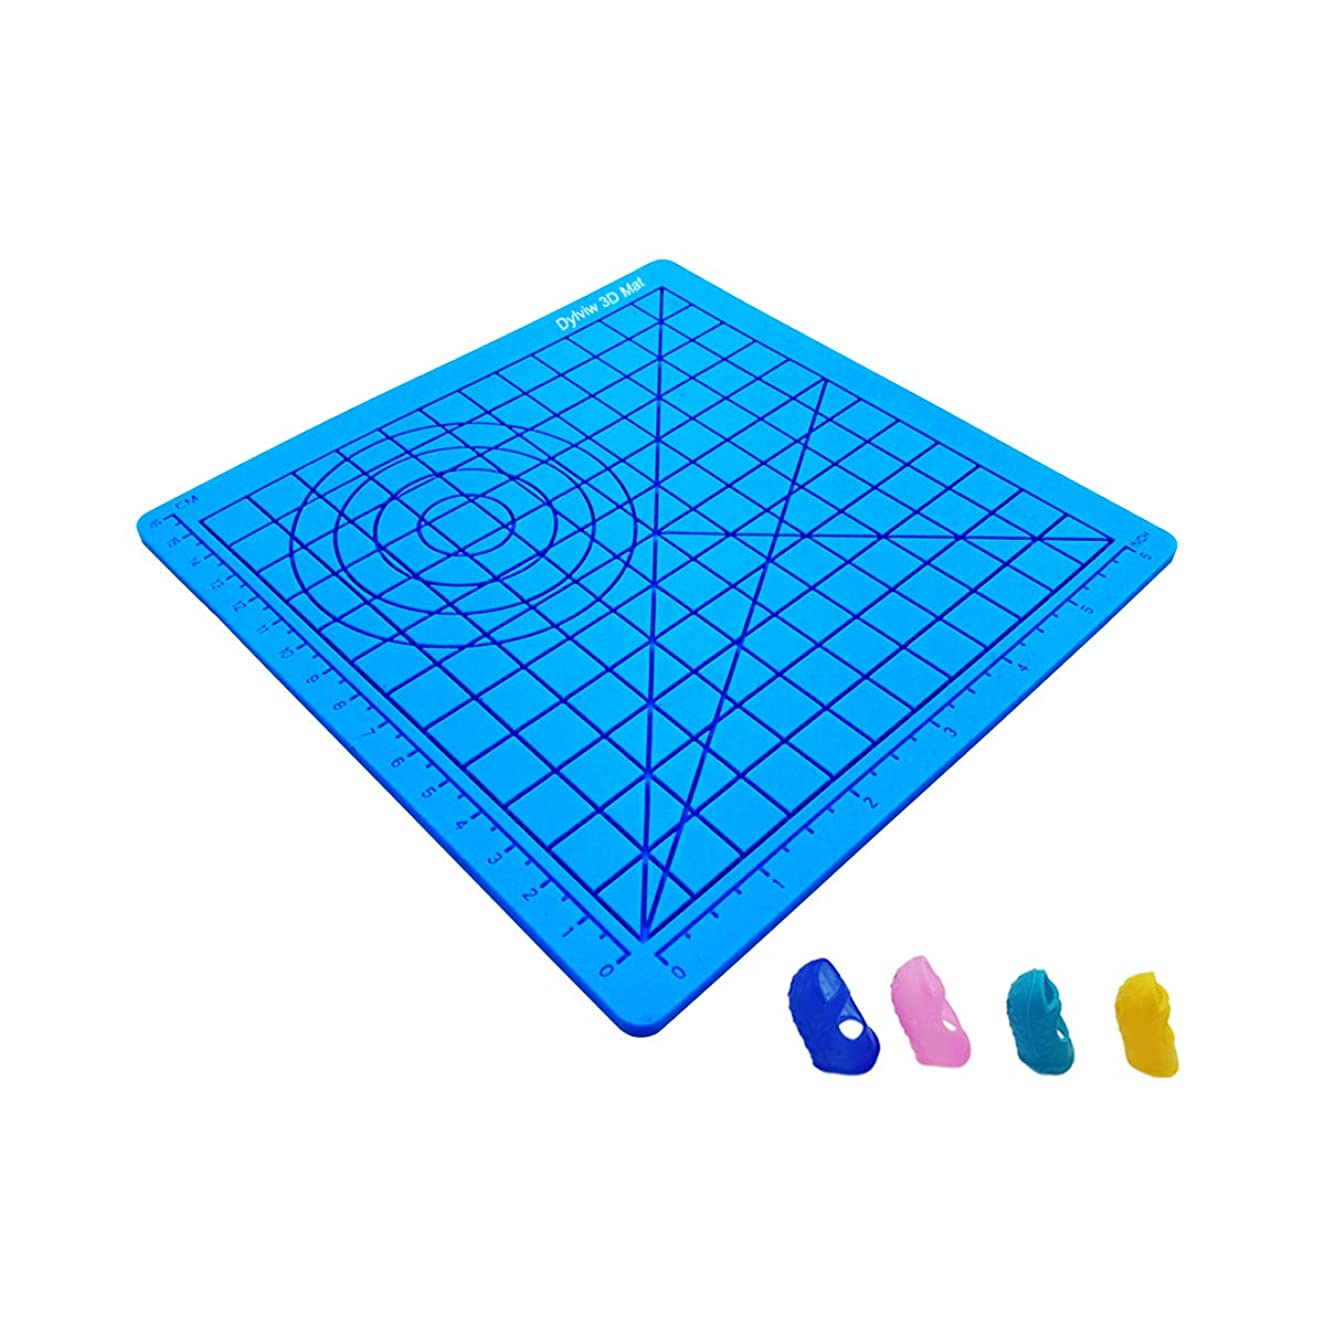 Multi-Purpose 3D Printing Design Silicone Mat Drawing Templates and Stencils for 3D Printing Pen, Perfect 3D Pen Drawing Tools with 4pcs Silicone Finger Protector Caps